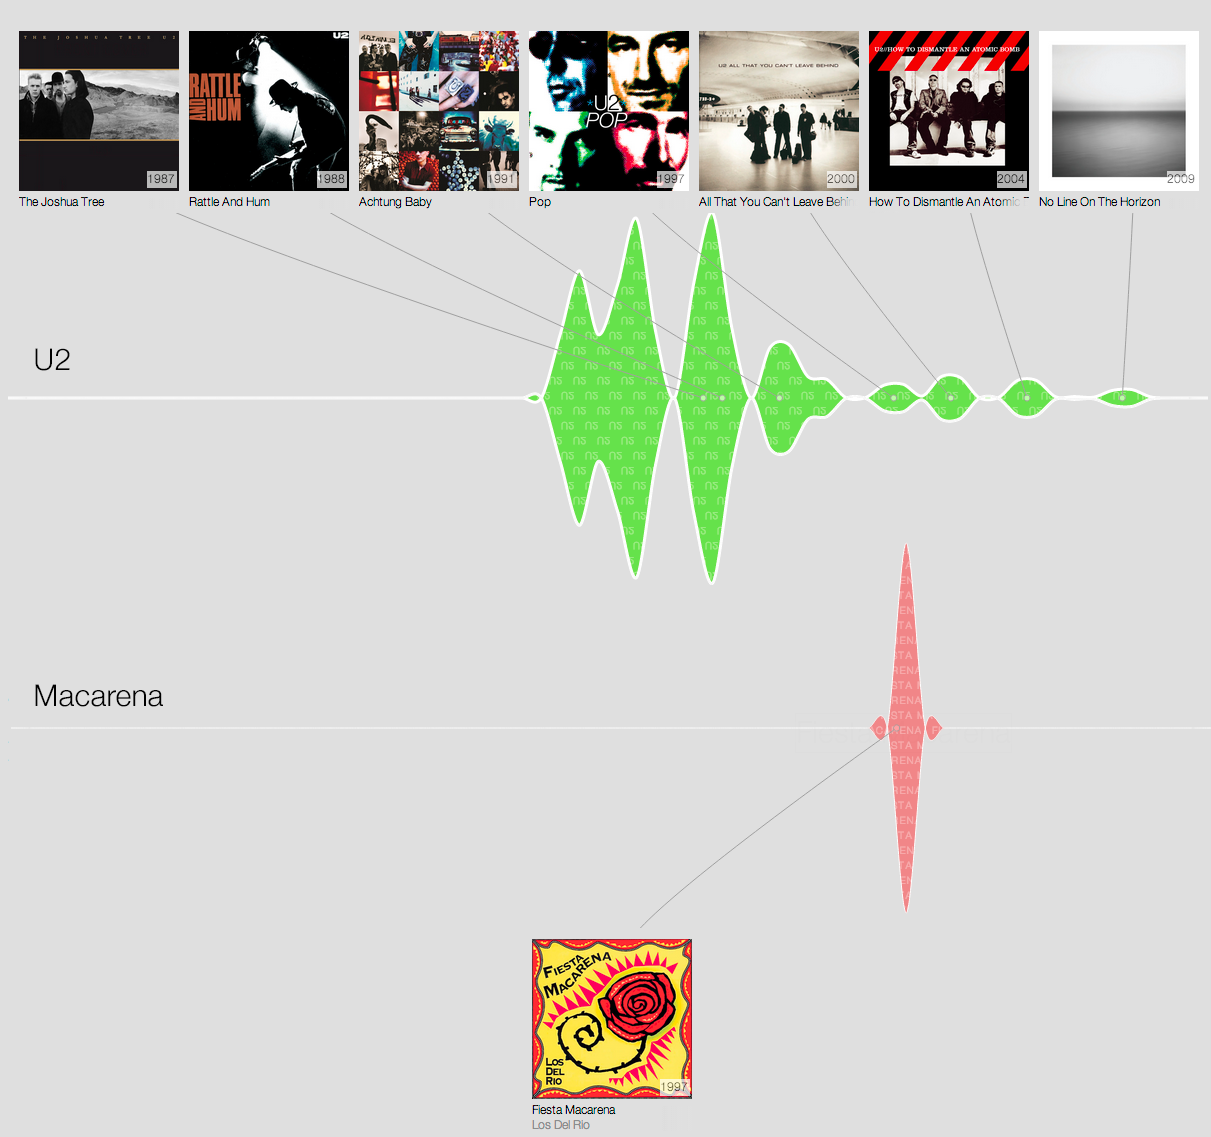 Google Music Timeline Comparison